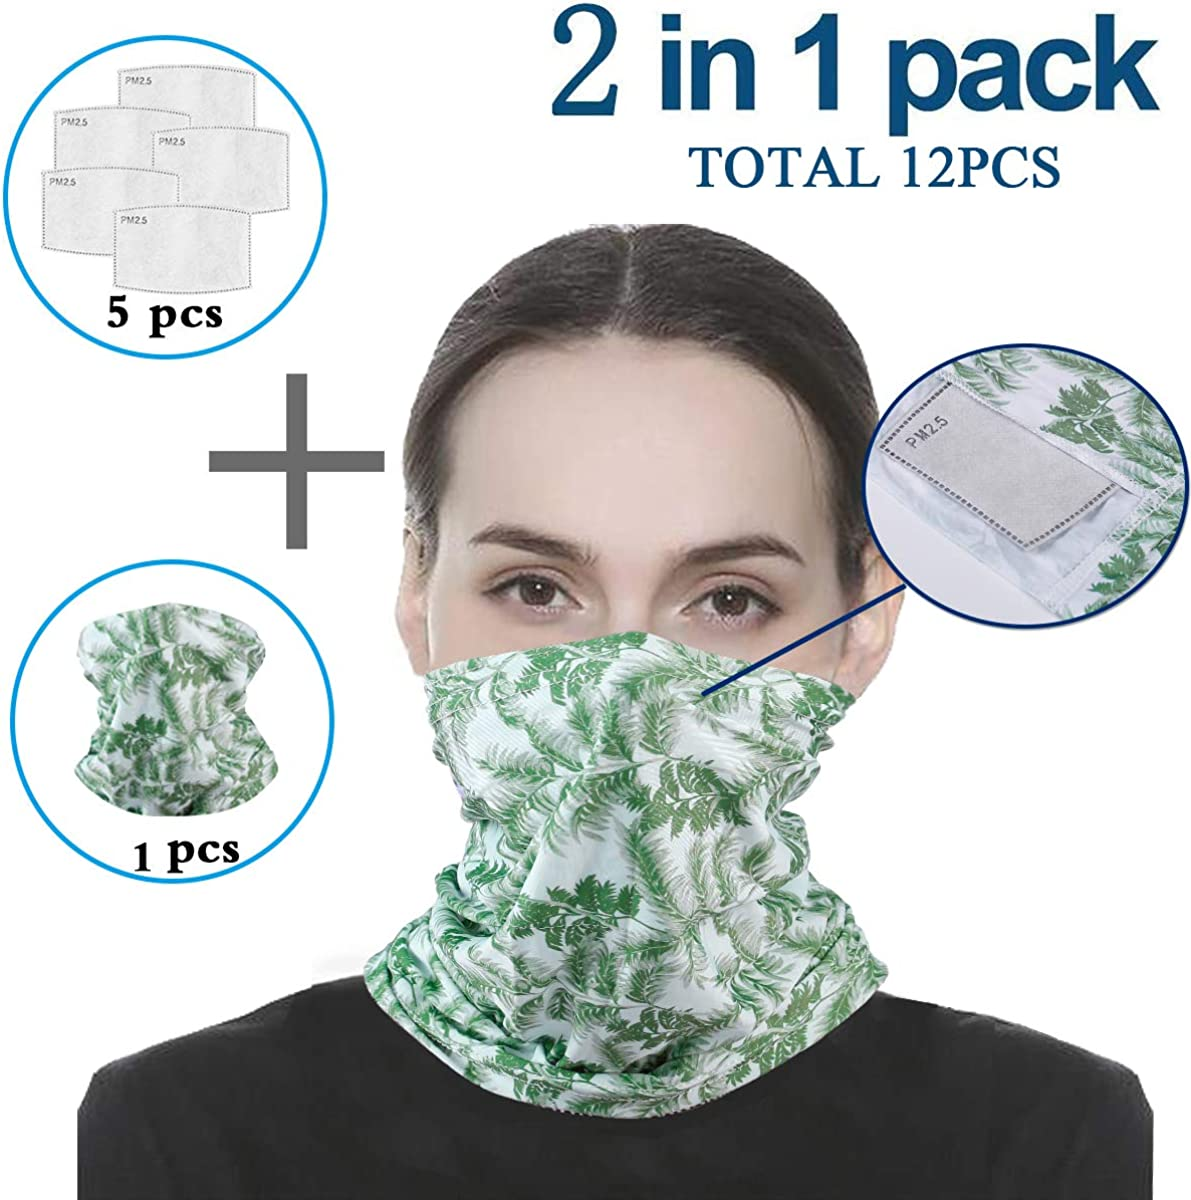 Scarf Bandanas Neck Gaiter with Safety Filters Multi-purpose Face Cover For Outdoors